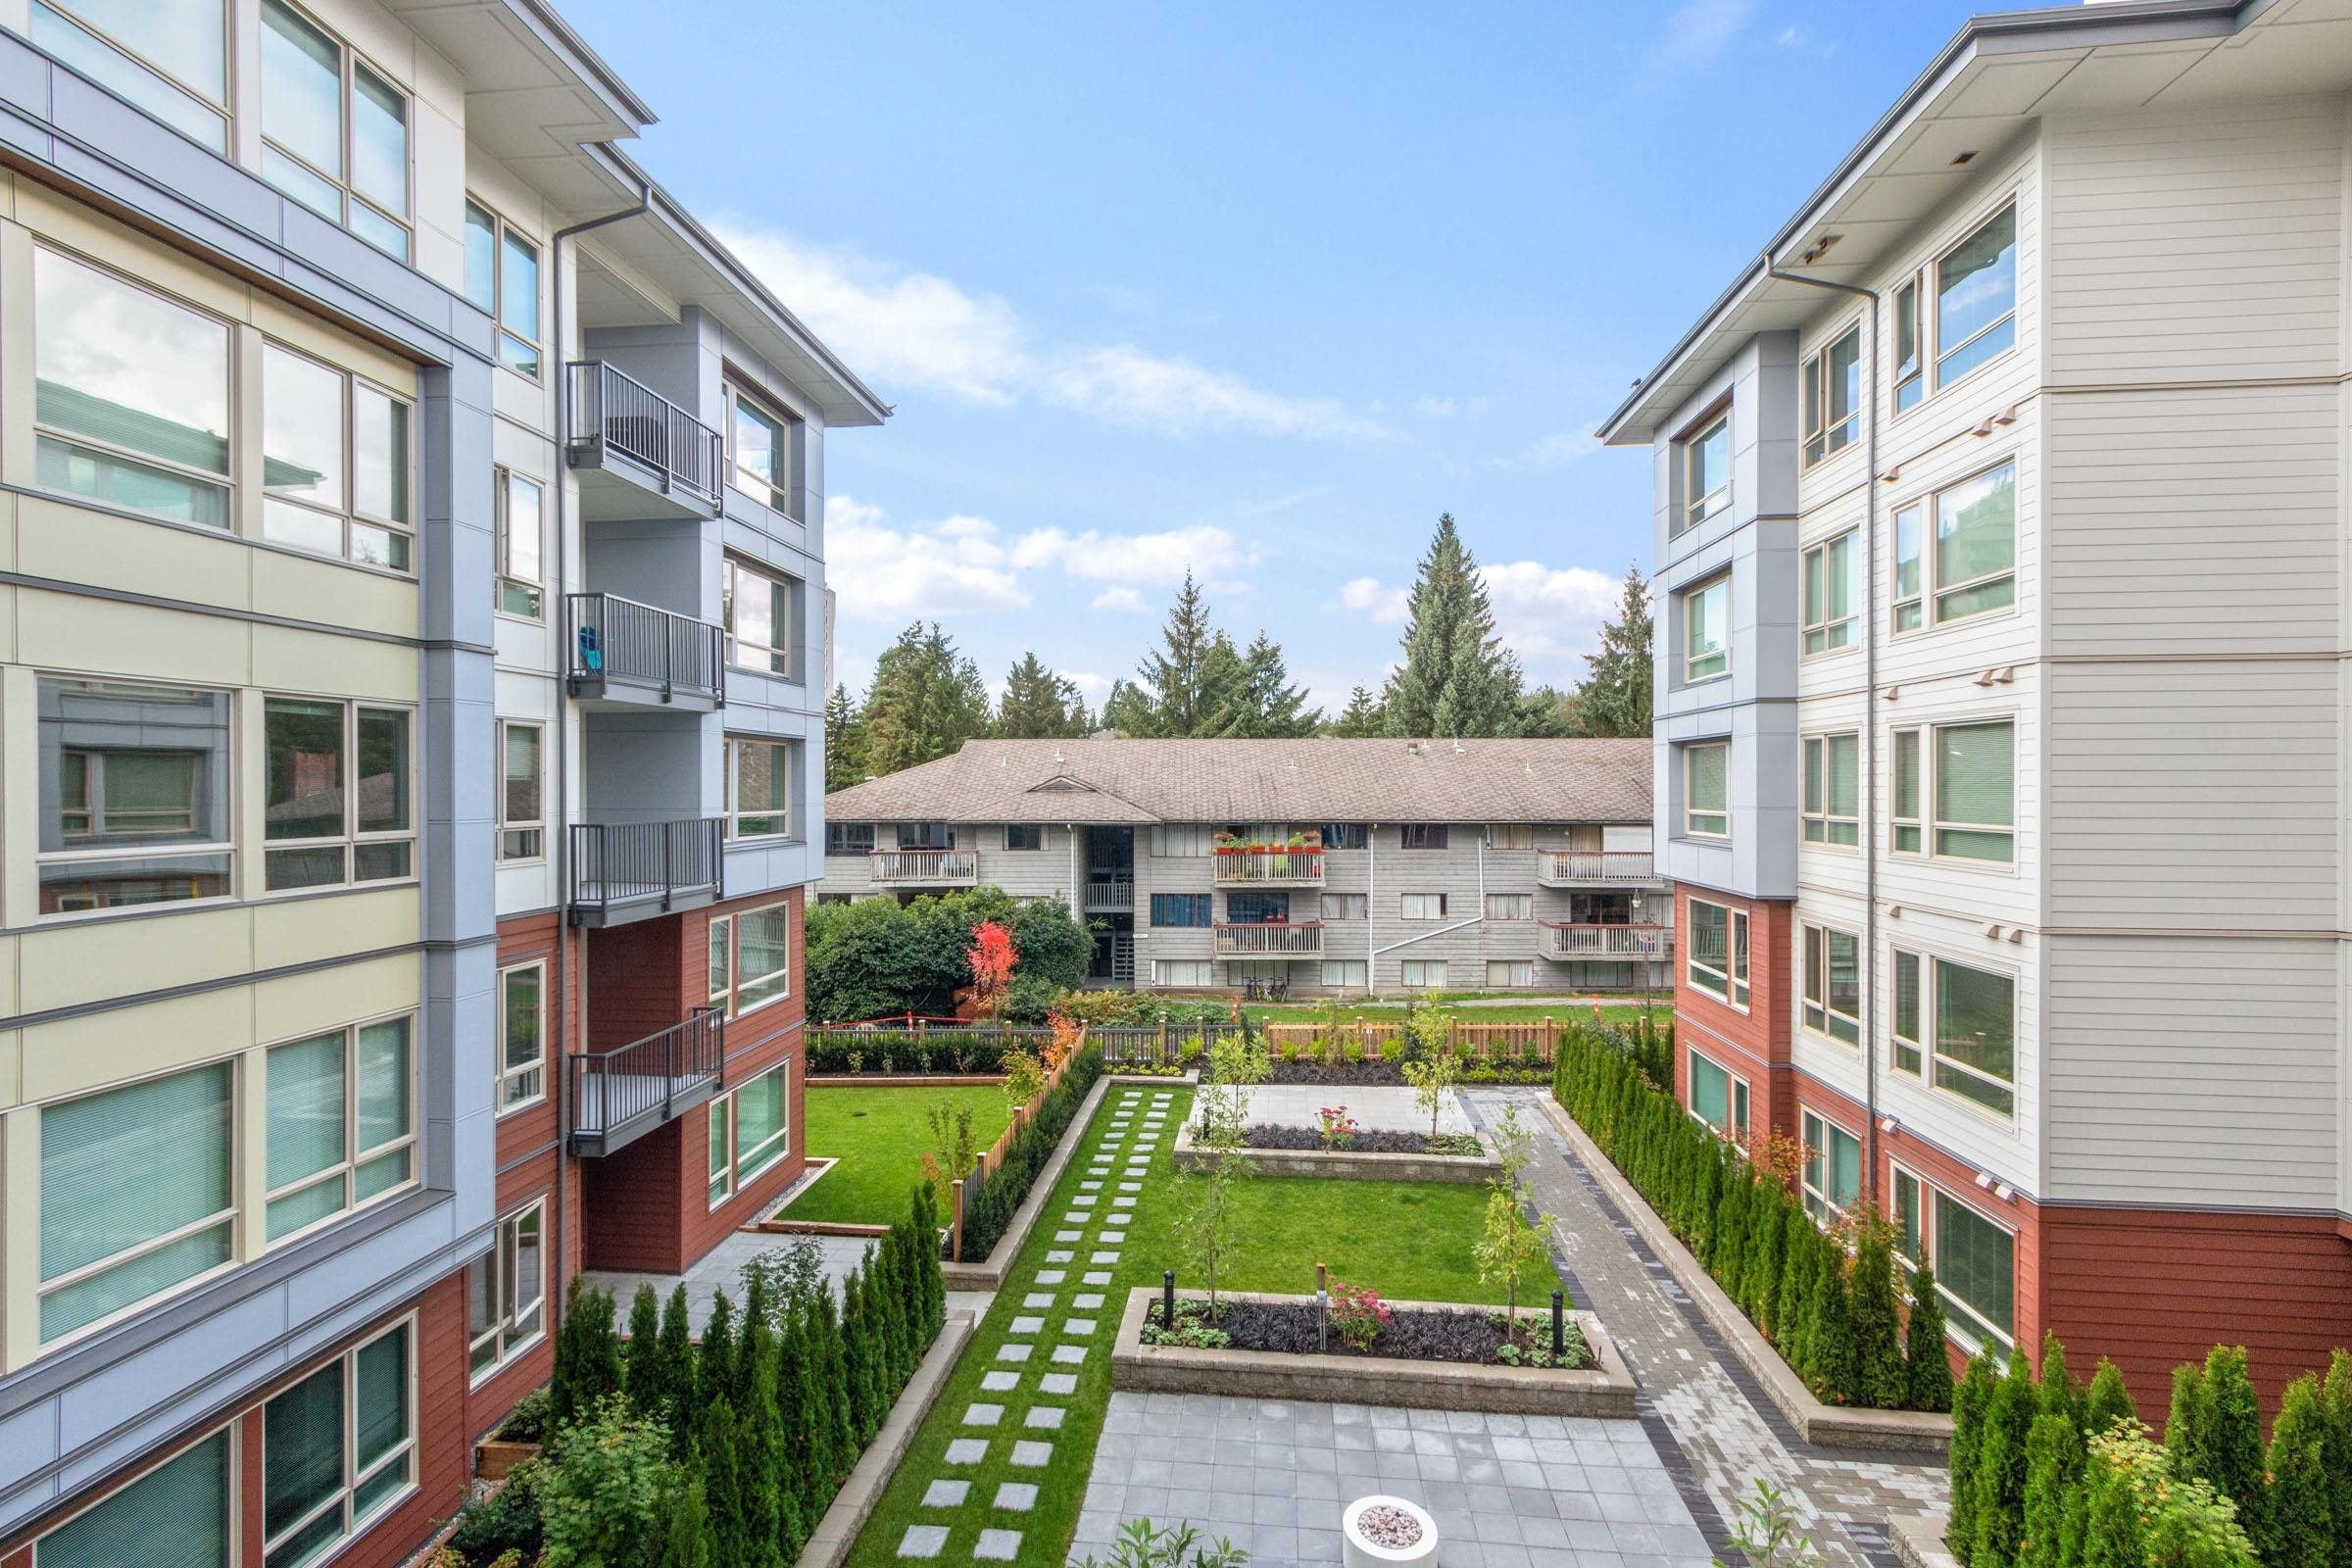 316 2651 LIBRARY LANE - Lynn Valley Apartment/Condo for sale, 2 Bedrooms (R2622878) - #21